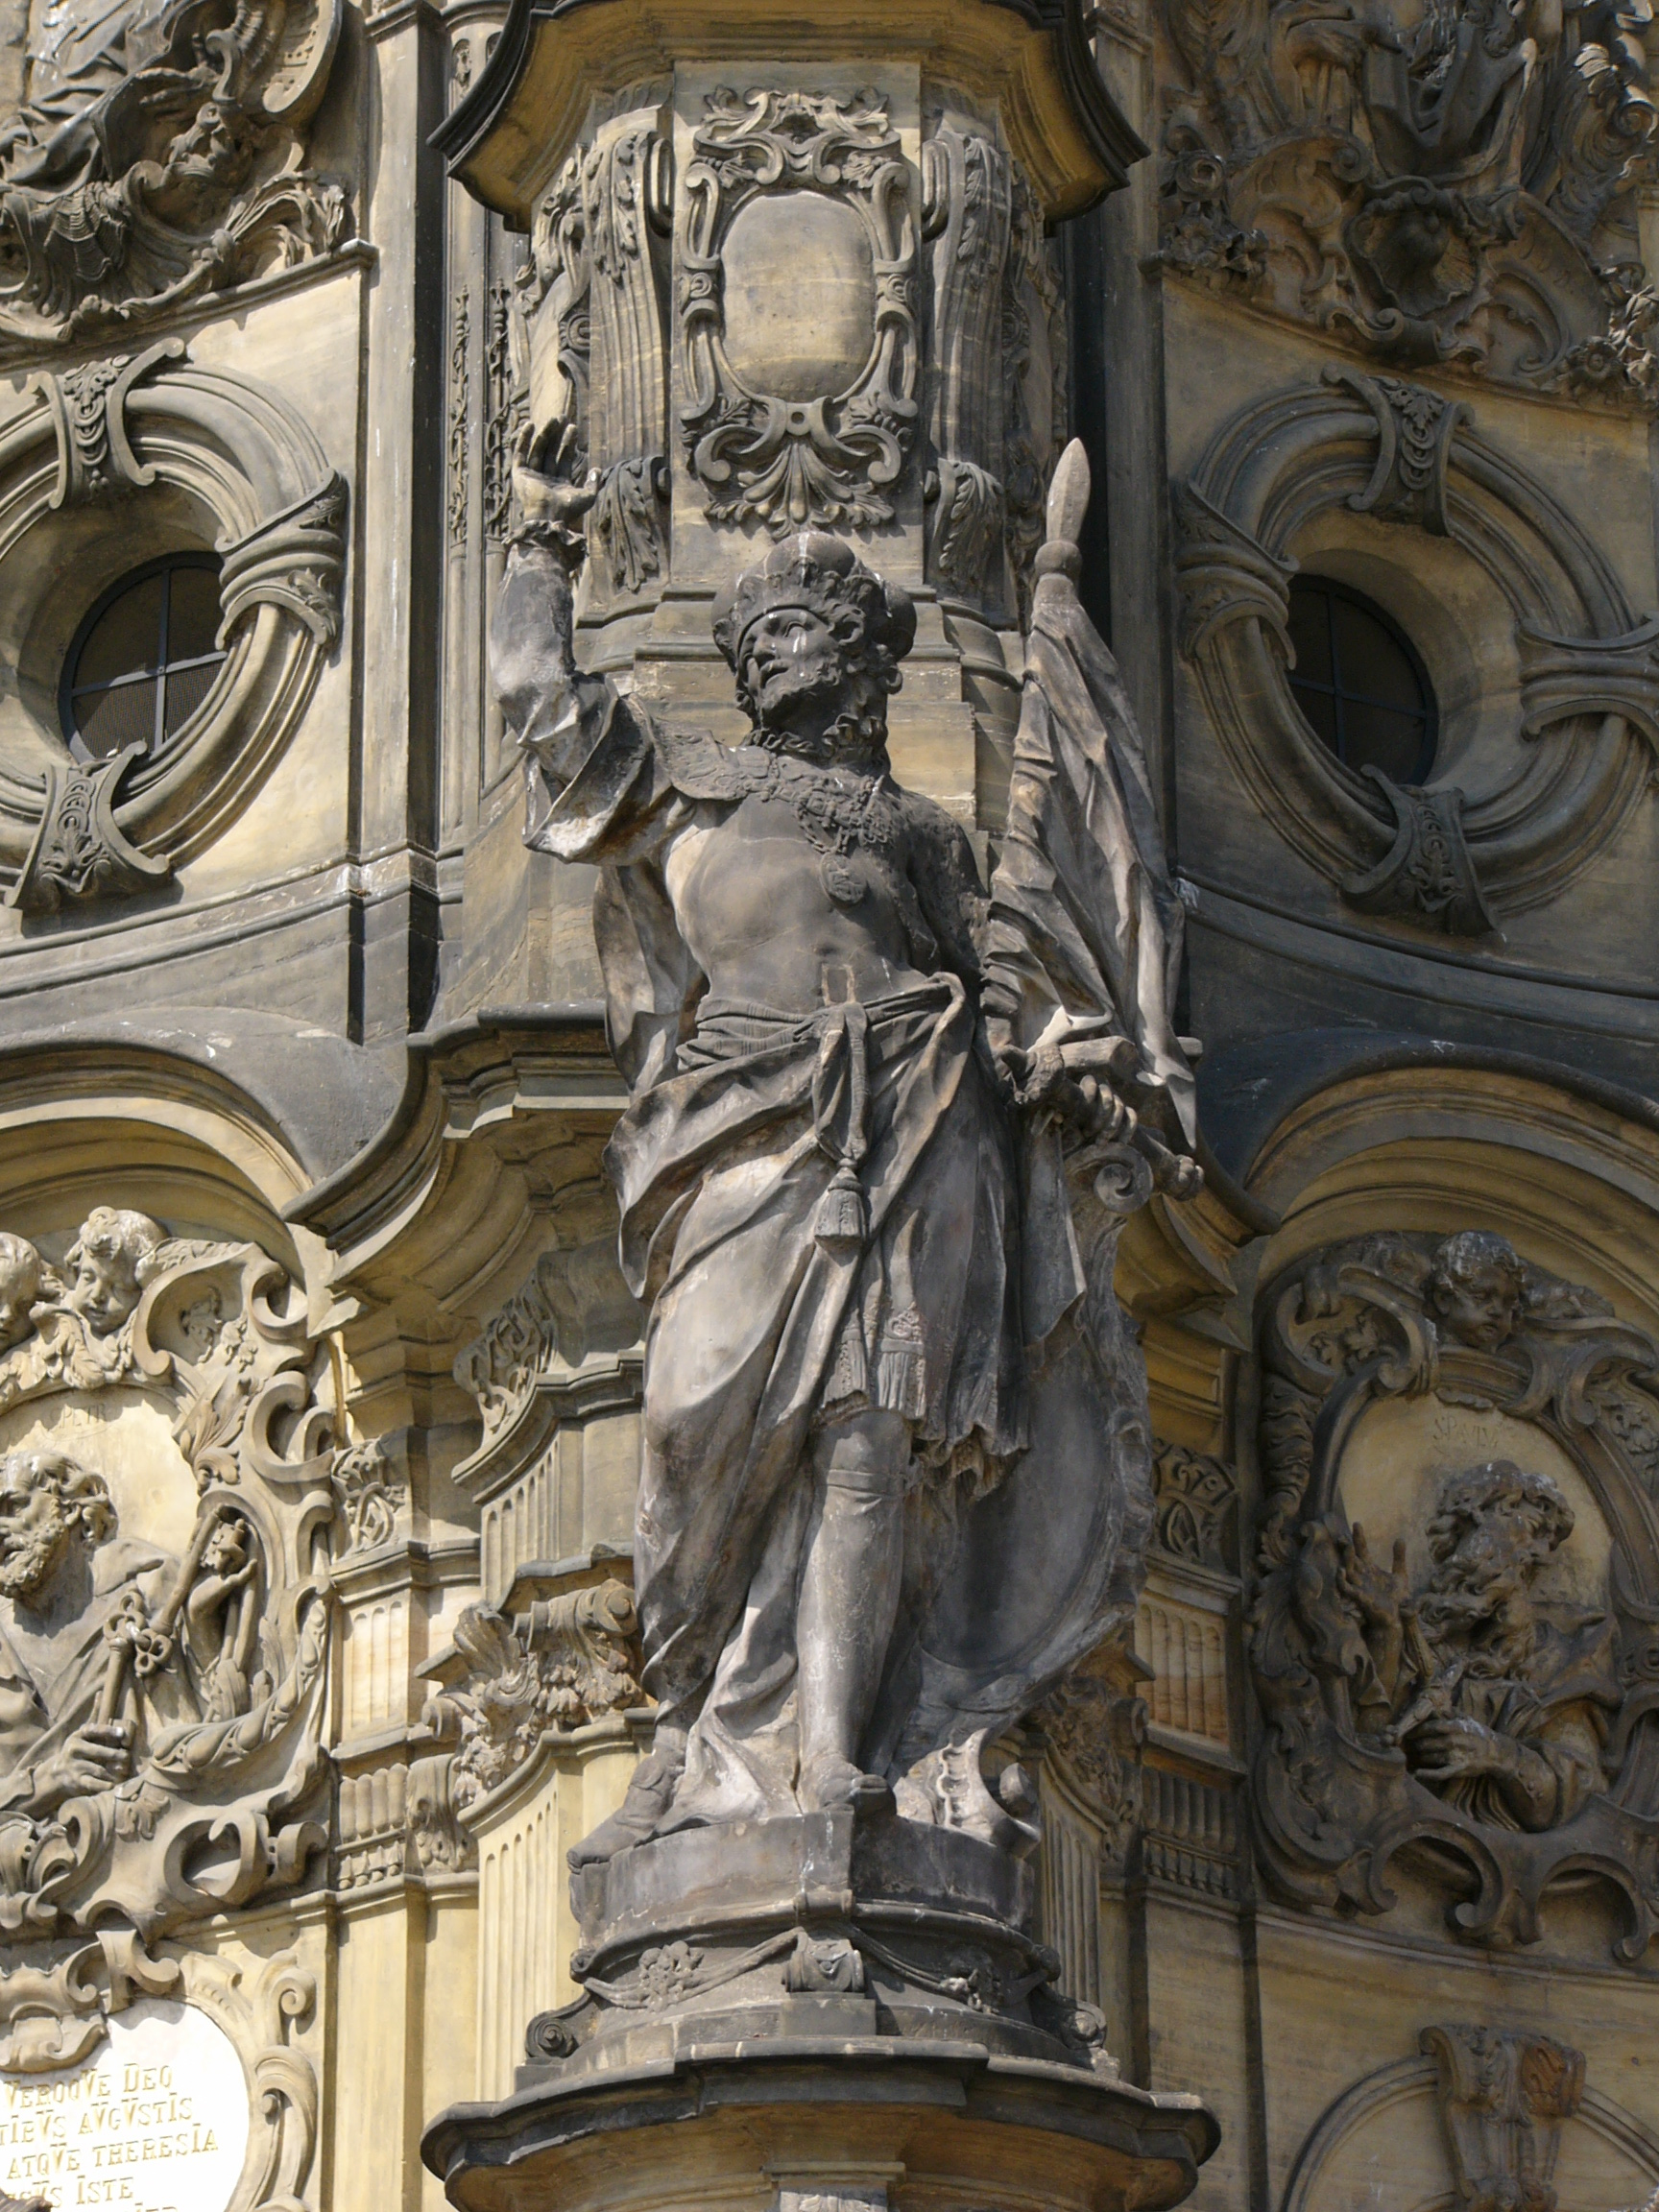 St. Wenceslaus I, Duke of Bohemia. A famous patron saint of the Czech people. Statue at the Holy Trinity Column in Olomouc.